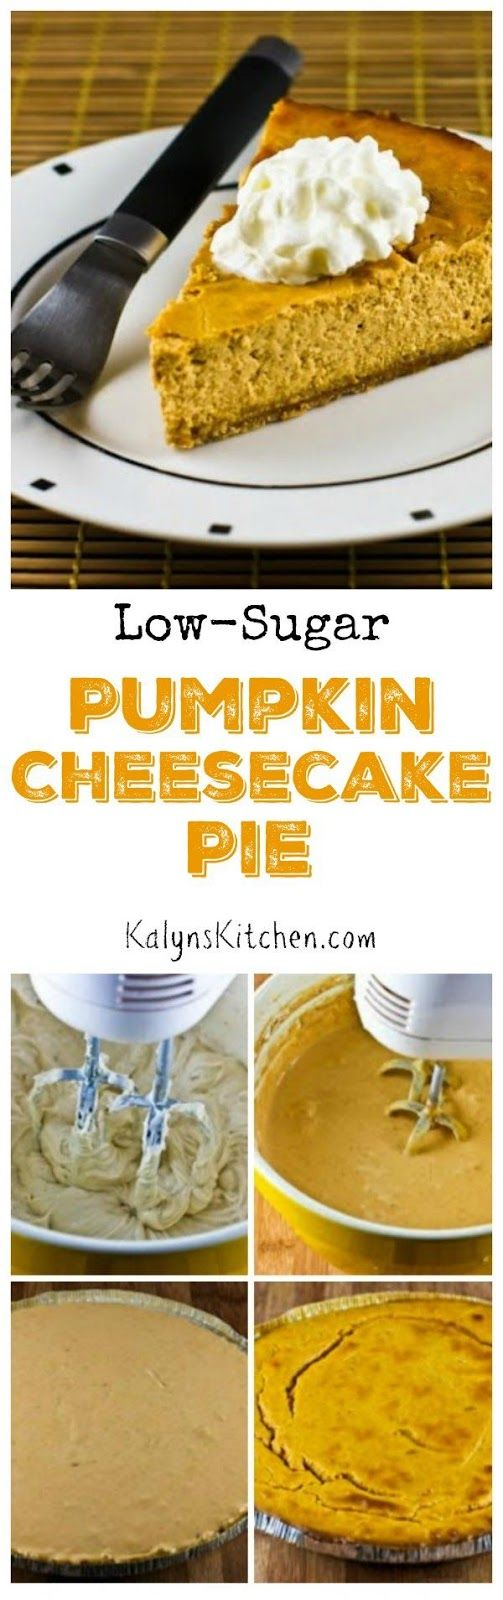 If Pumpkin Pie and Pumpkin Cheesecake got married and had a baby, it would be this Low-Sugar Pumpkin Cheesecake Pie! This has been my favorite Thanksgiving pie for a few years now!  [found on KalynsKitchen.com]